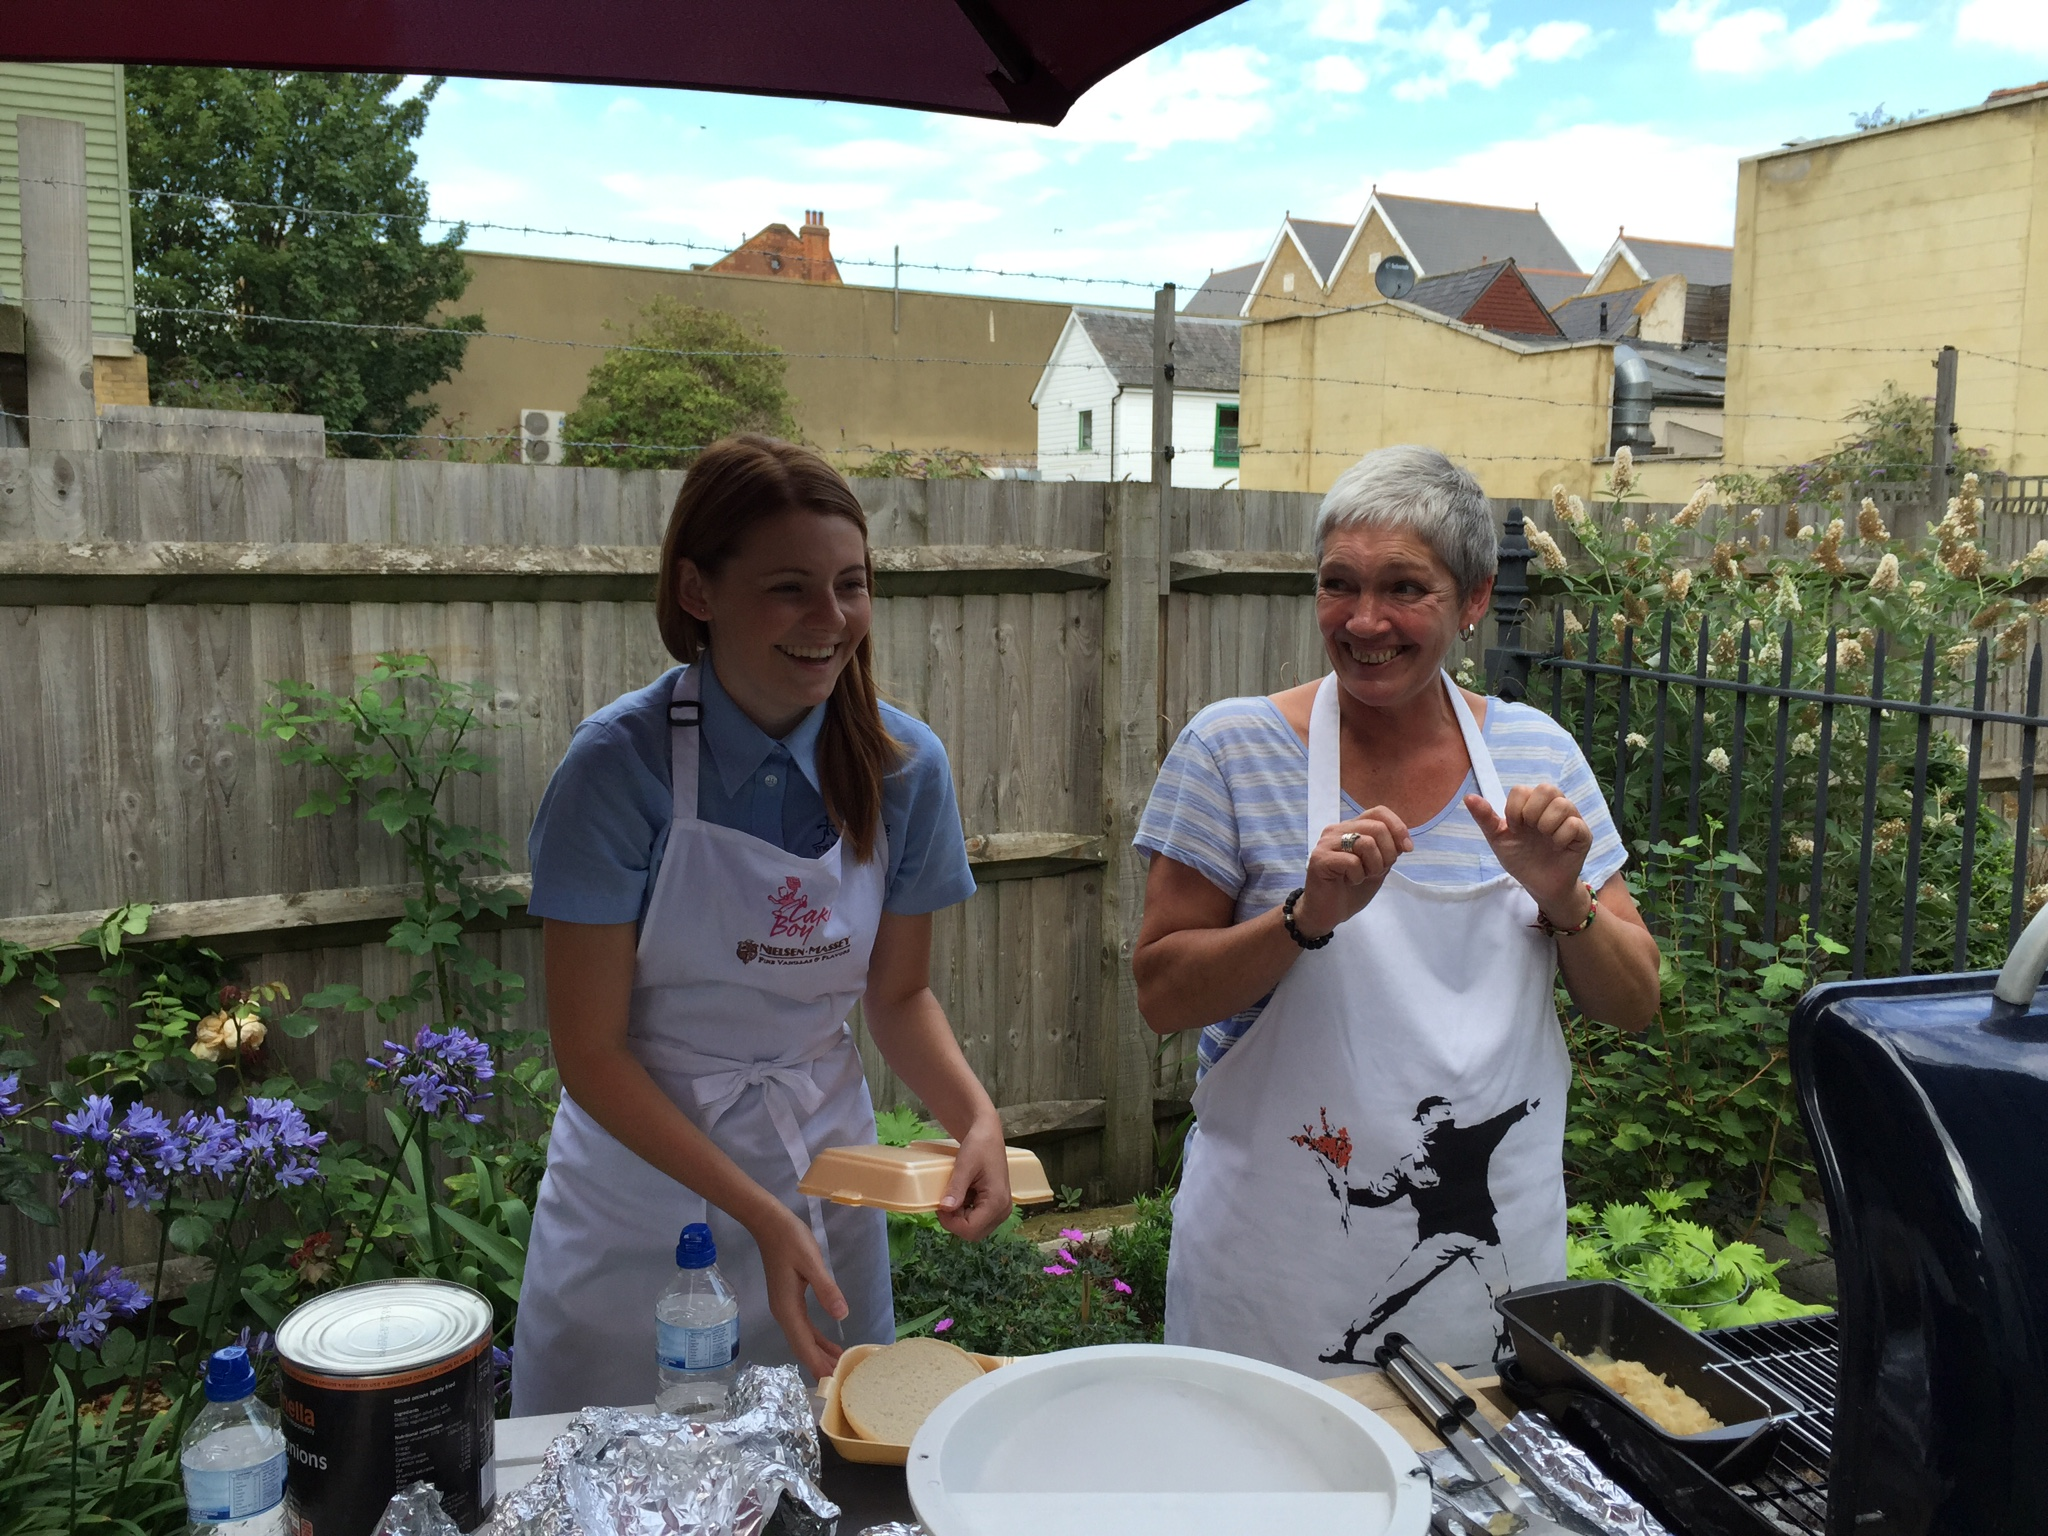 Kim and Marcia of Sharrocks - Barbecue chefs for the day